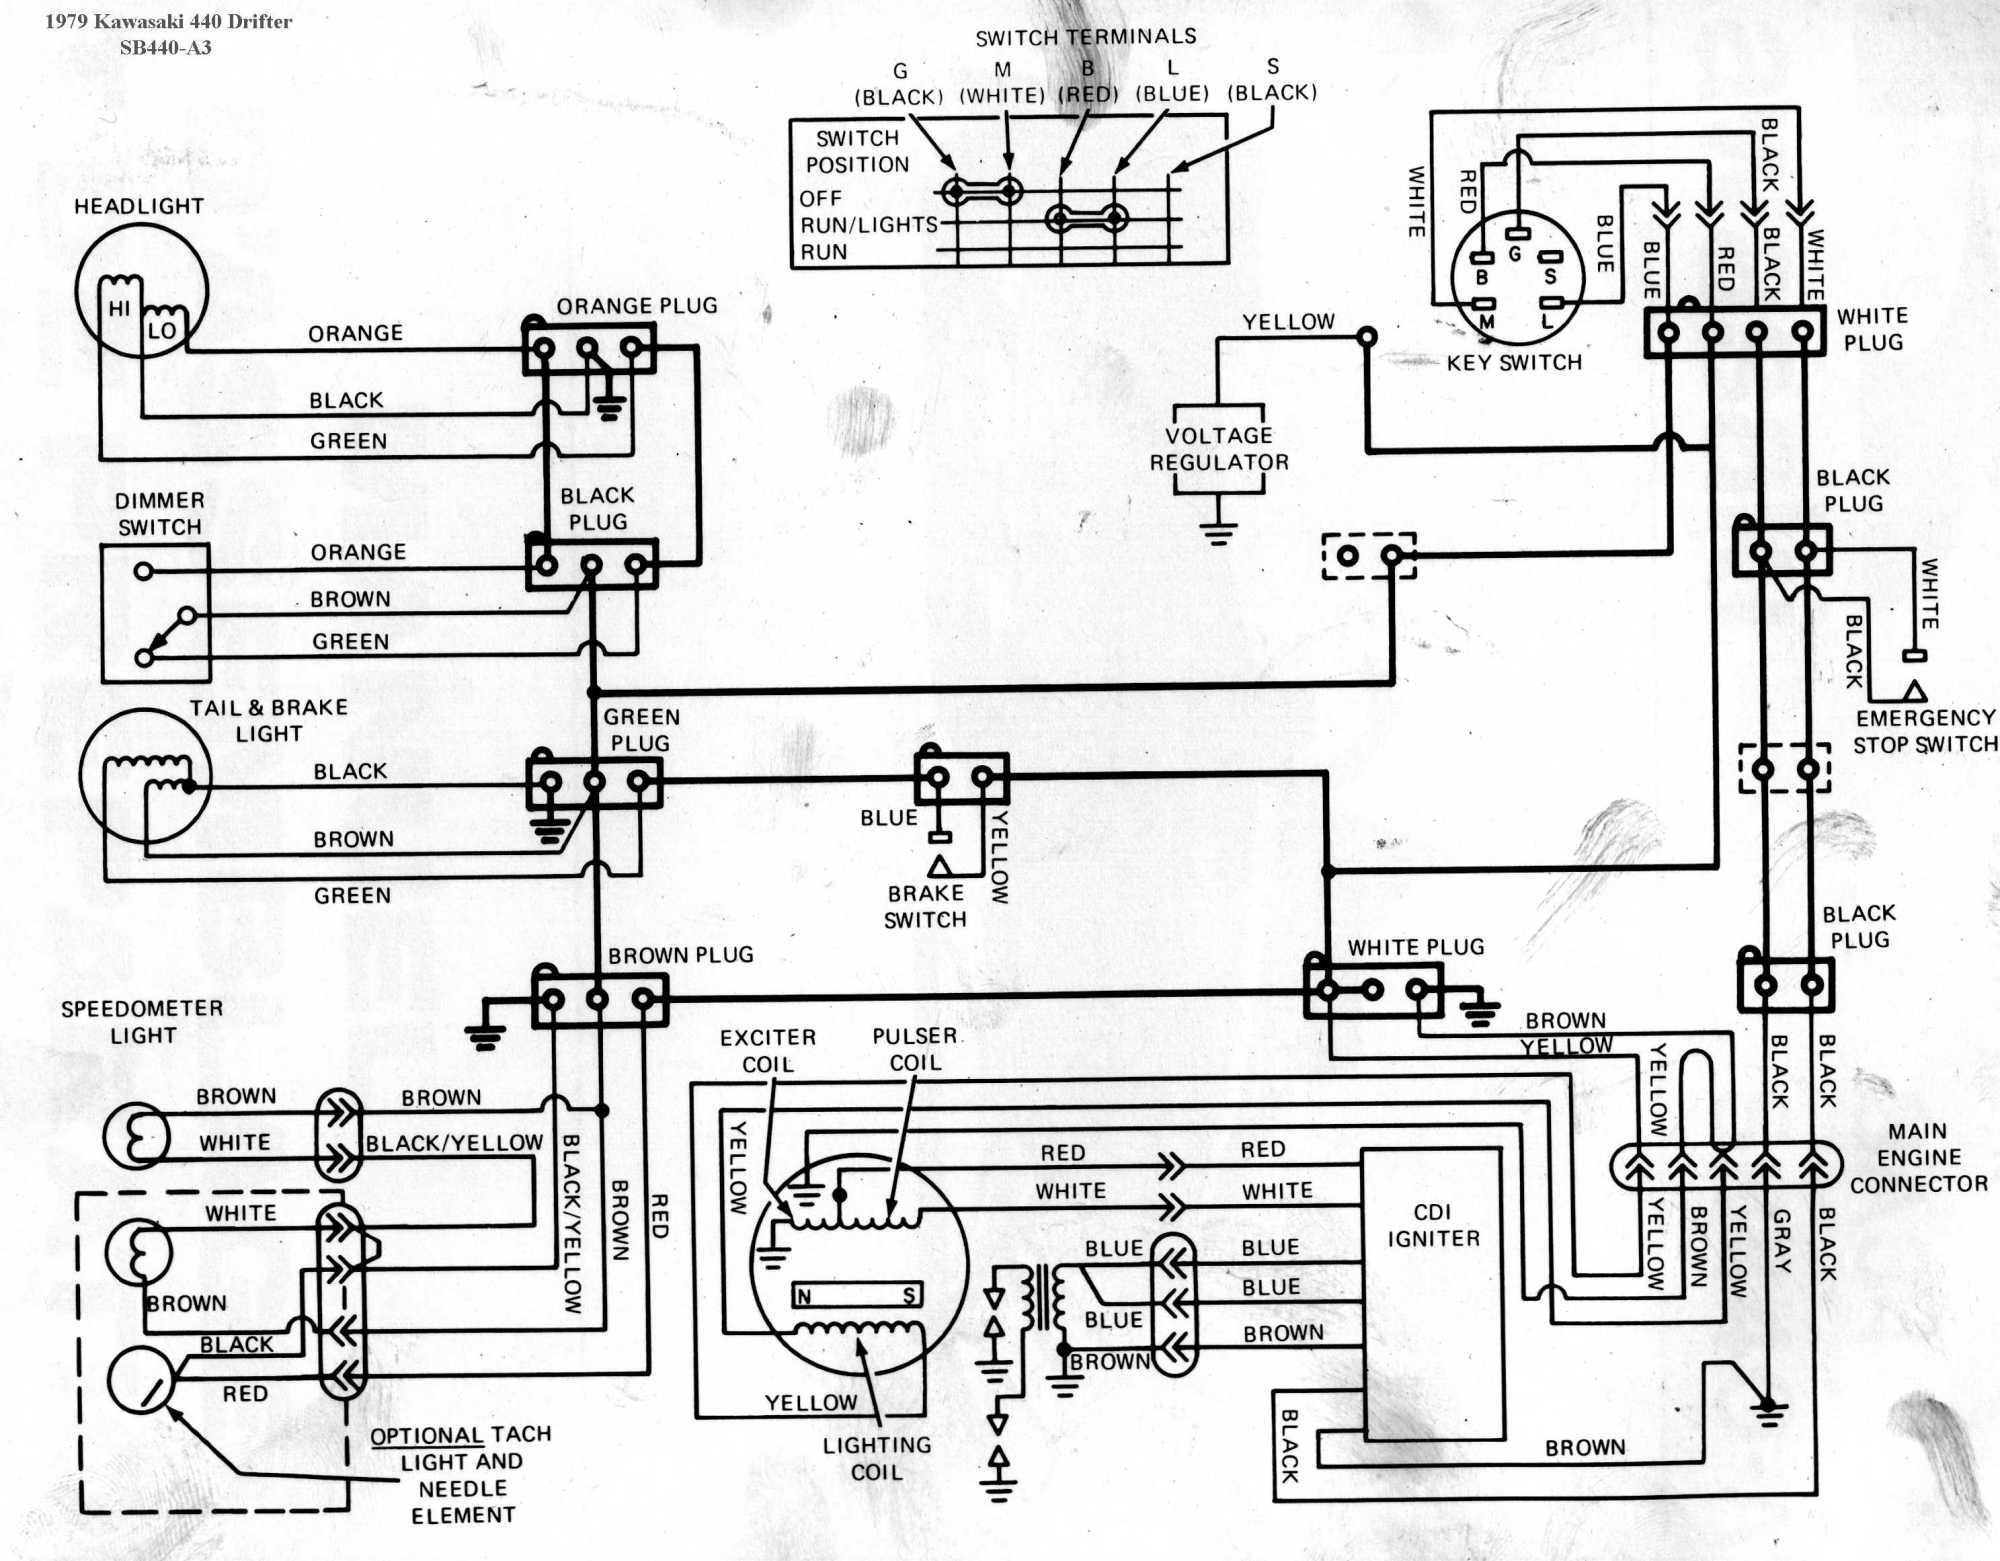 hight resolution of kawasaki drifter wiring diagrams wire diagrams 1979 kawasaki